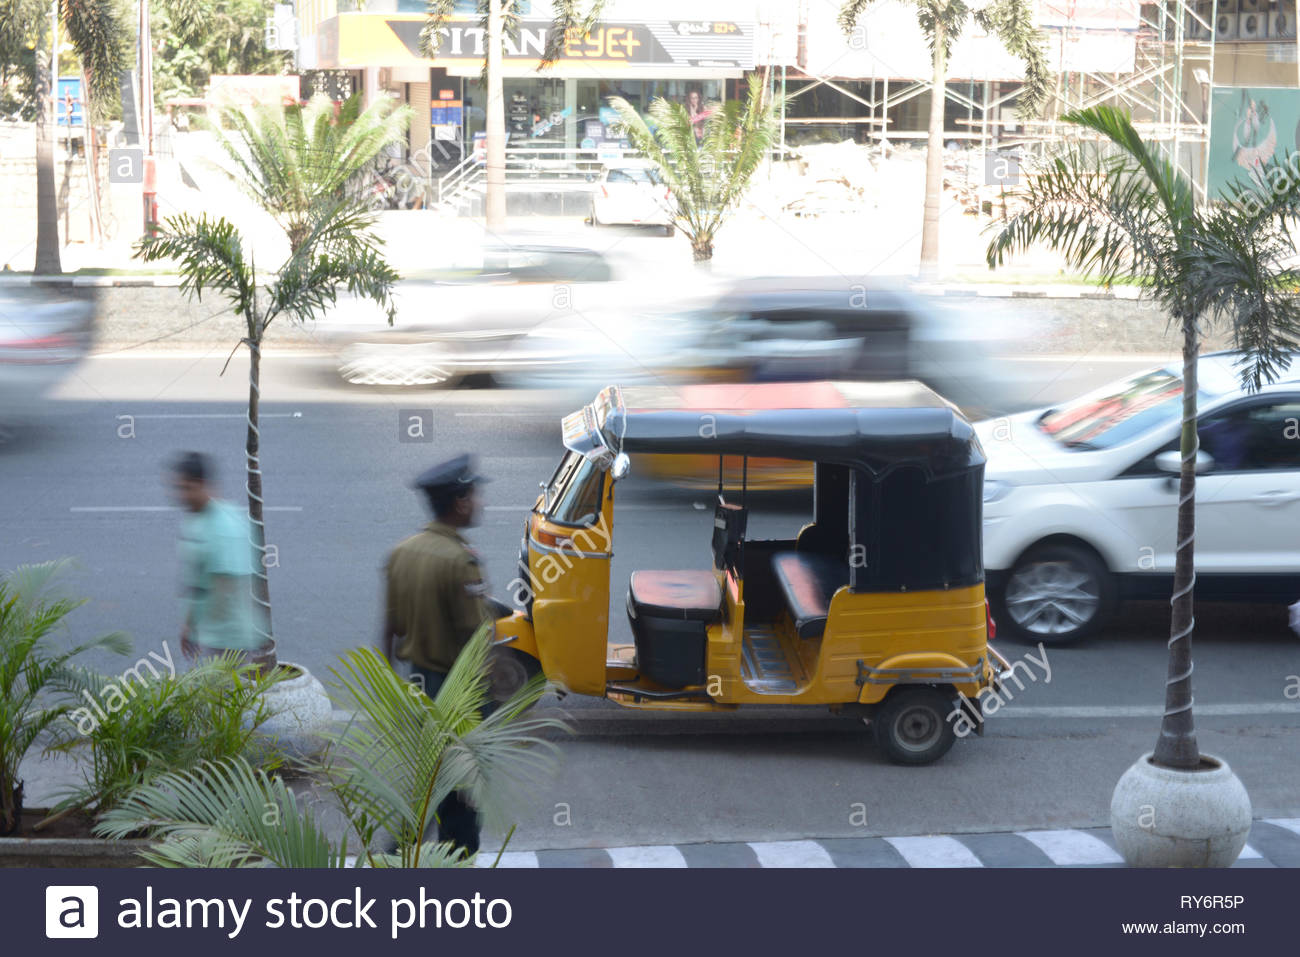 Rickshaw parked on busy street in city - Stock Image